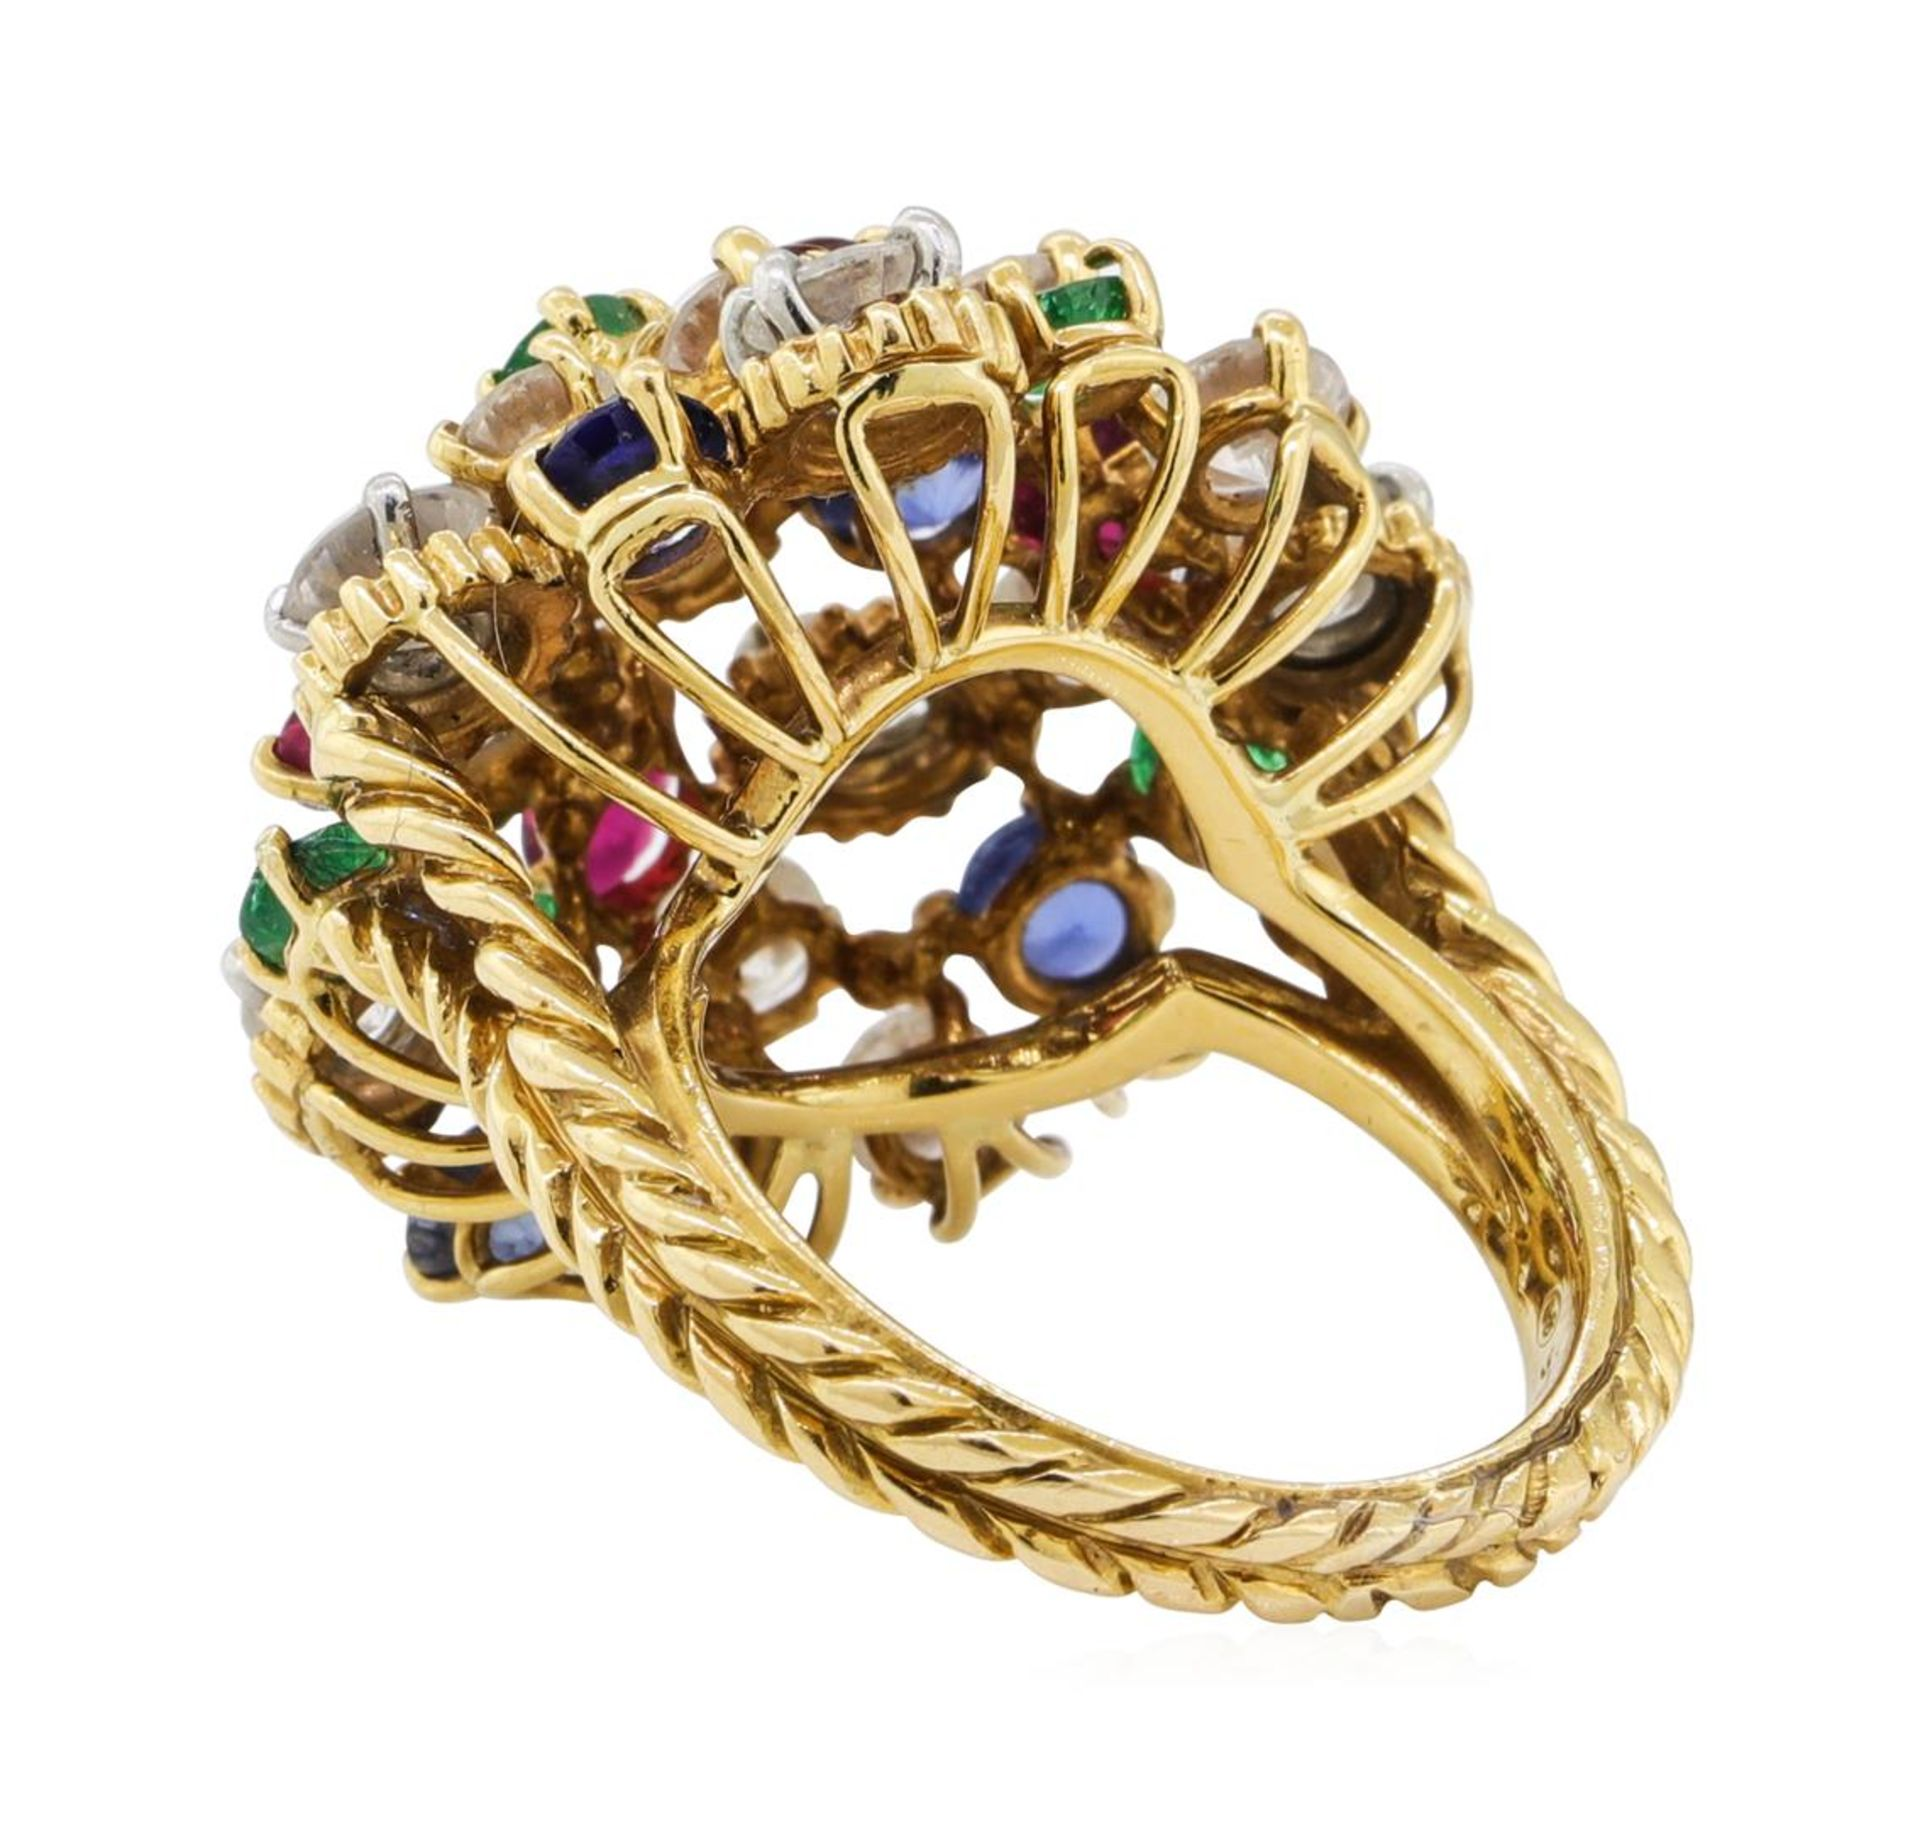 7.08 ctw Ruby, Emerald, Sapphire, and Diamond Ring - 18KT Yellow Gold and Platin - Image 3 of 6